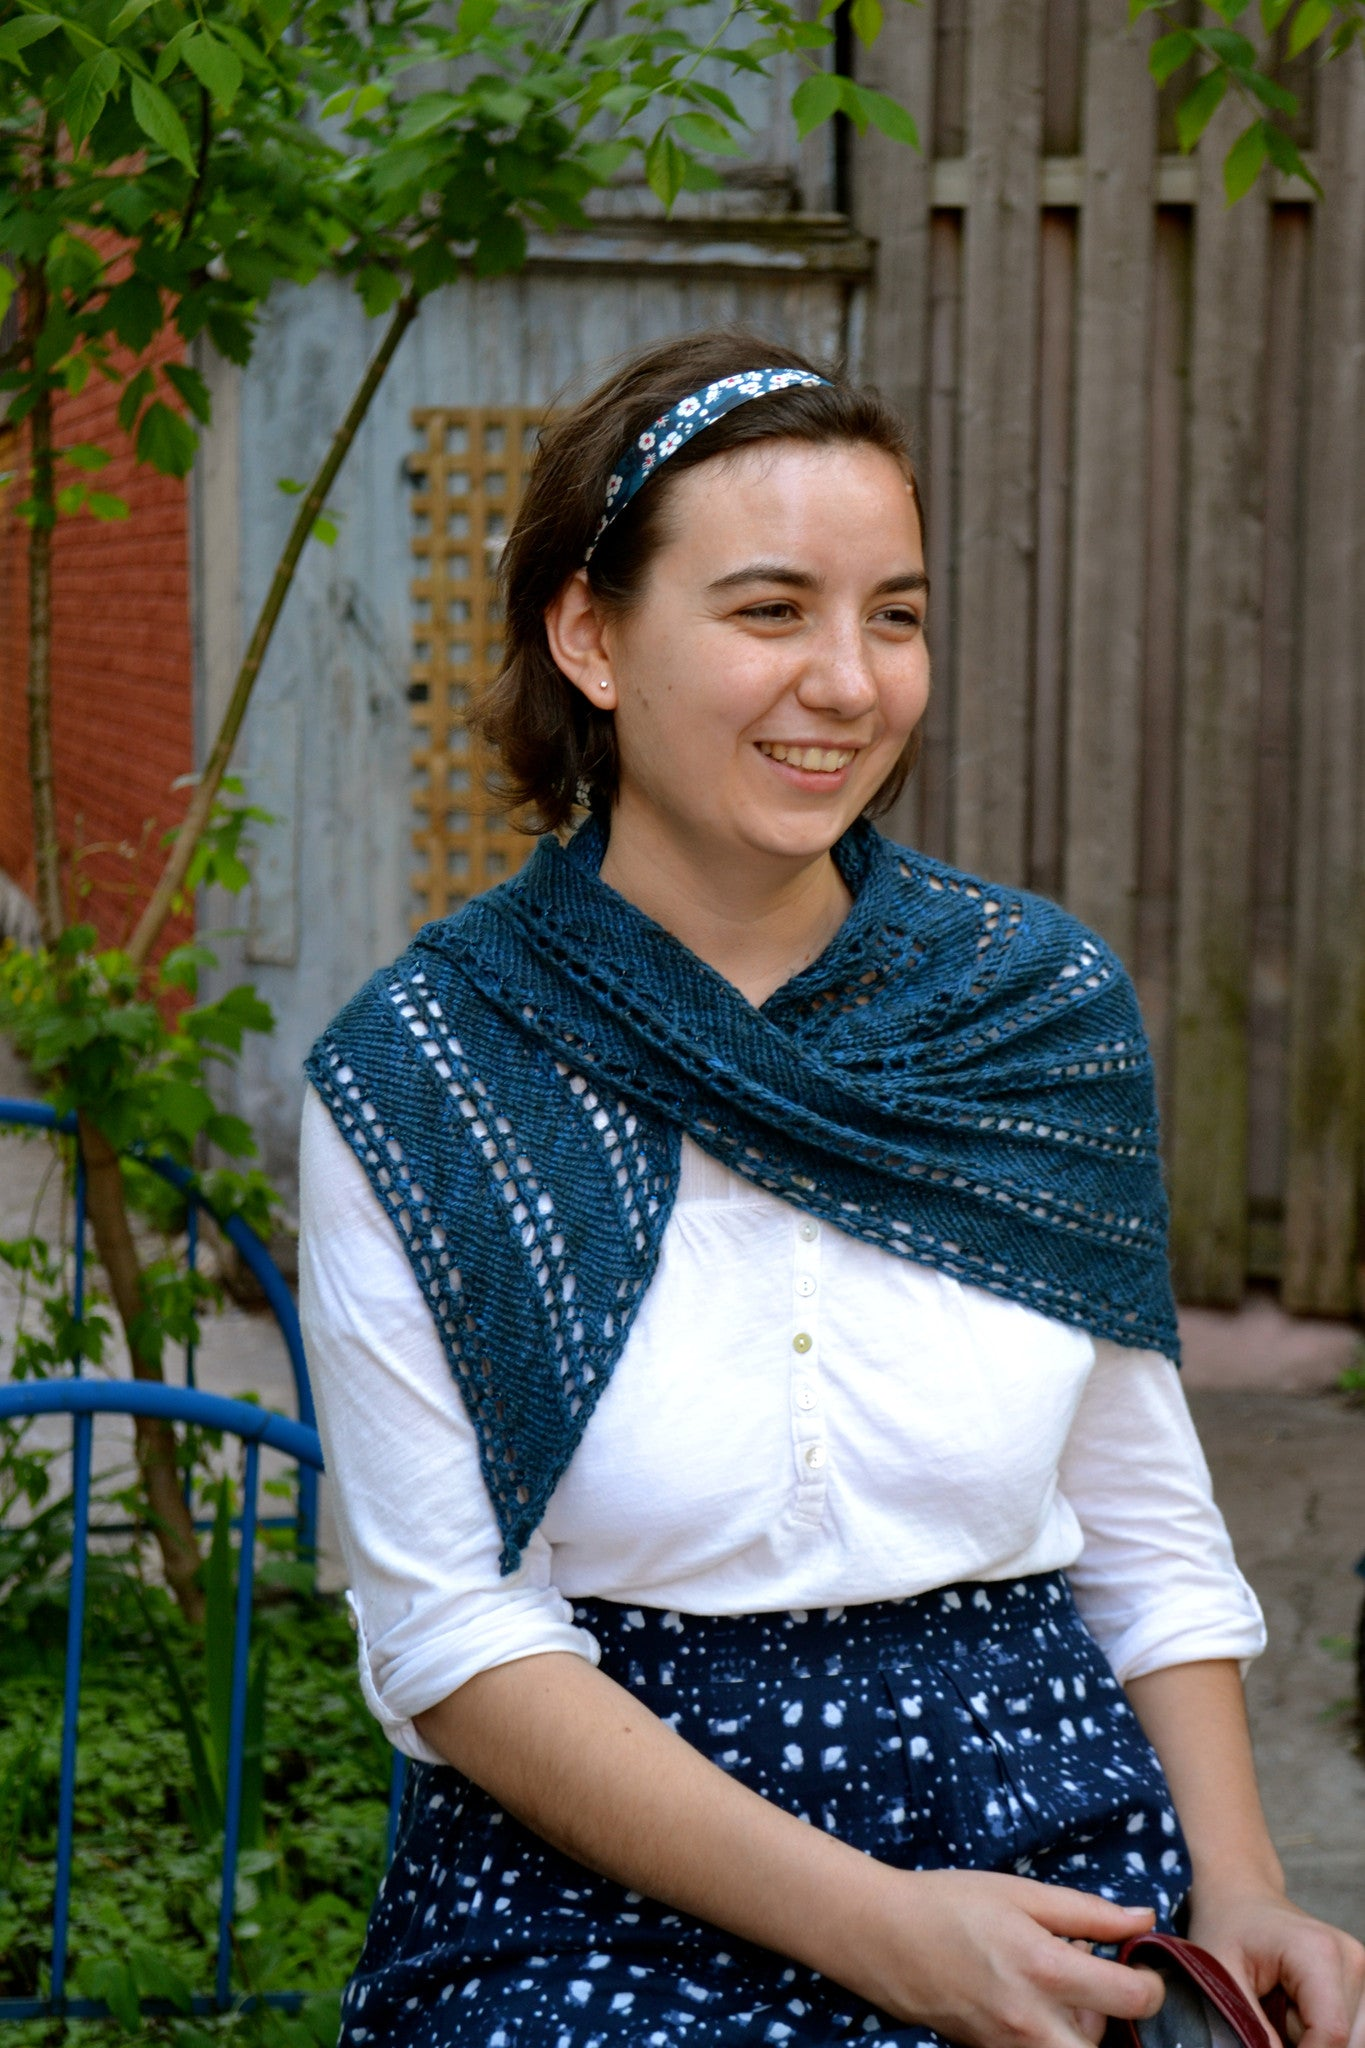 Diagonal Lace Shawl